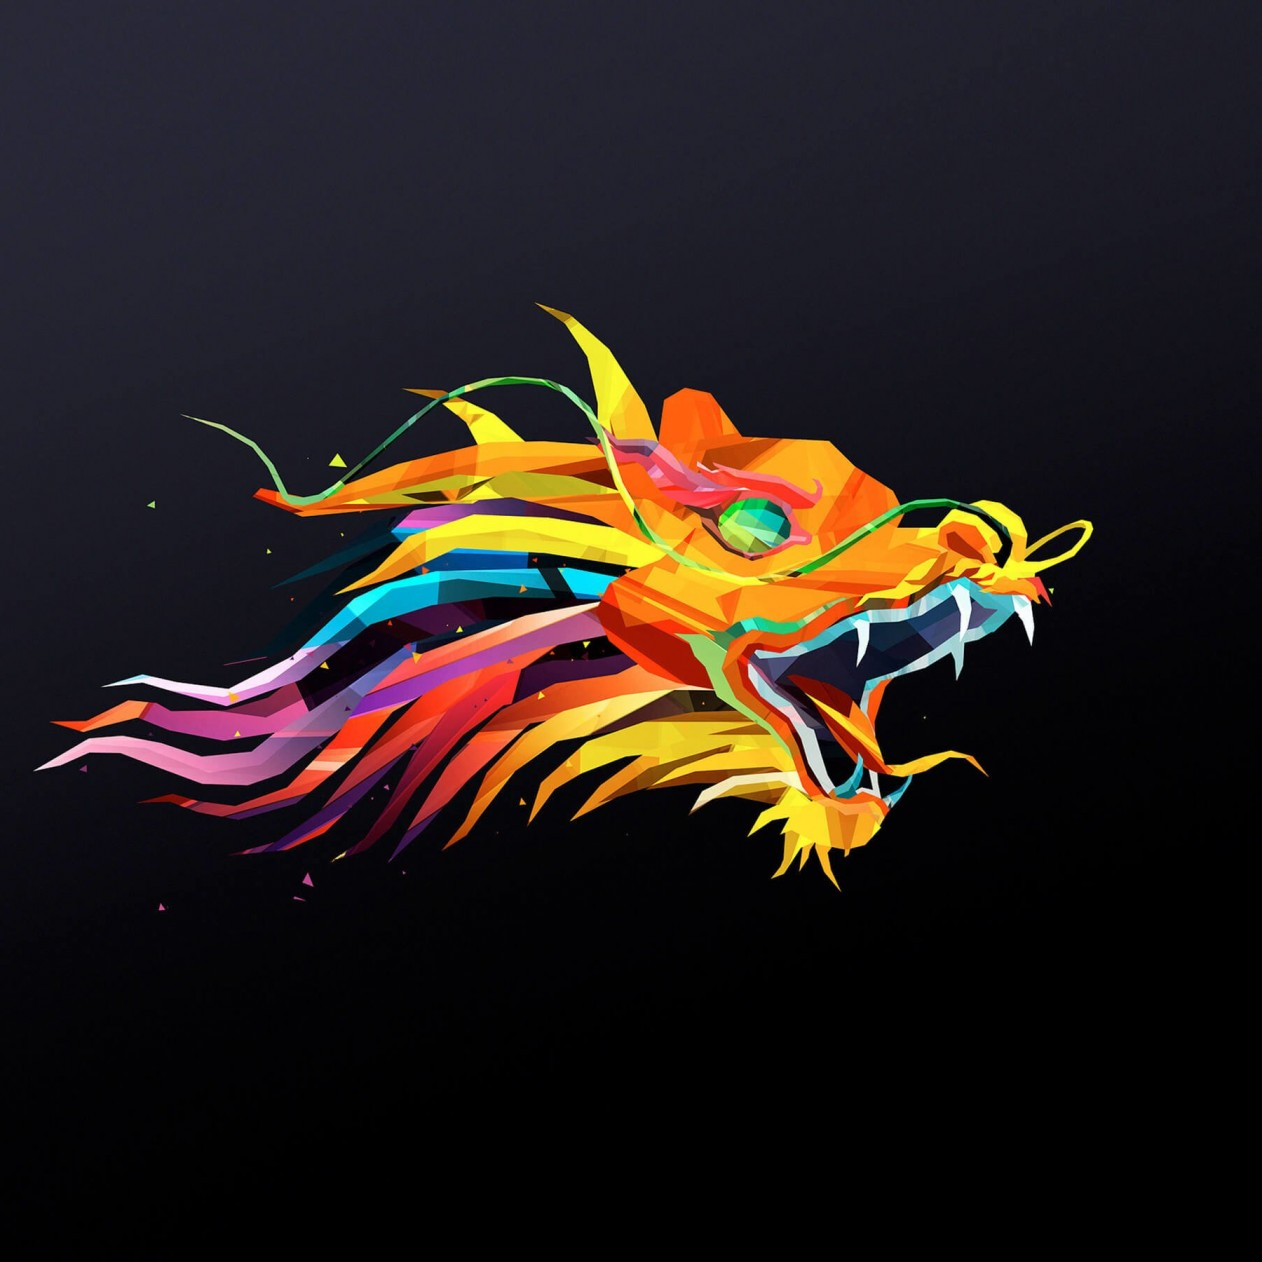 The Dragon Wallpaper for Apple iPad mini